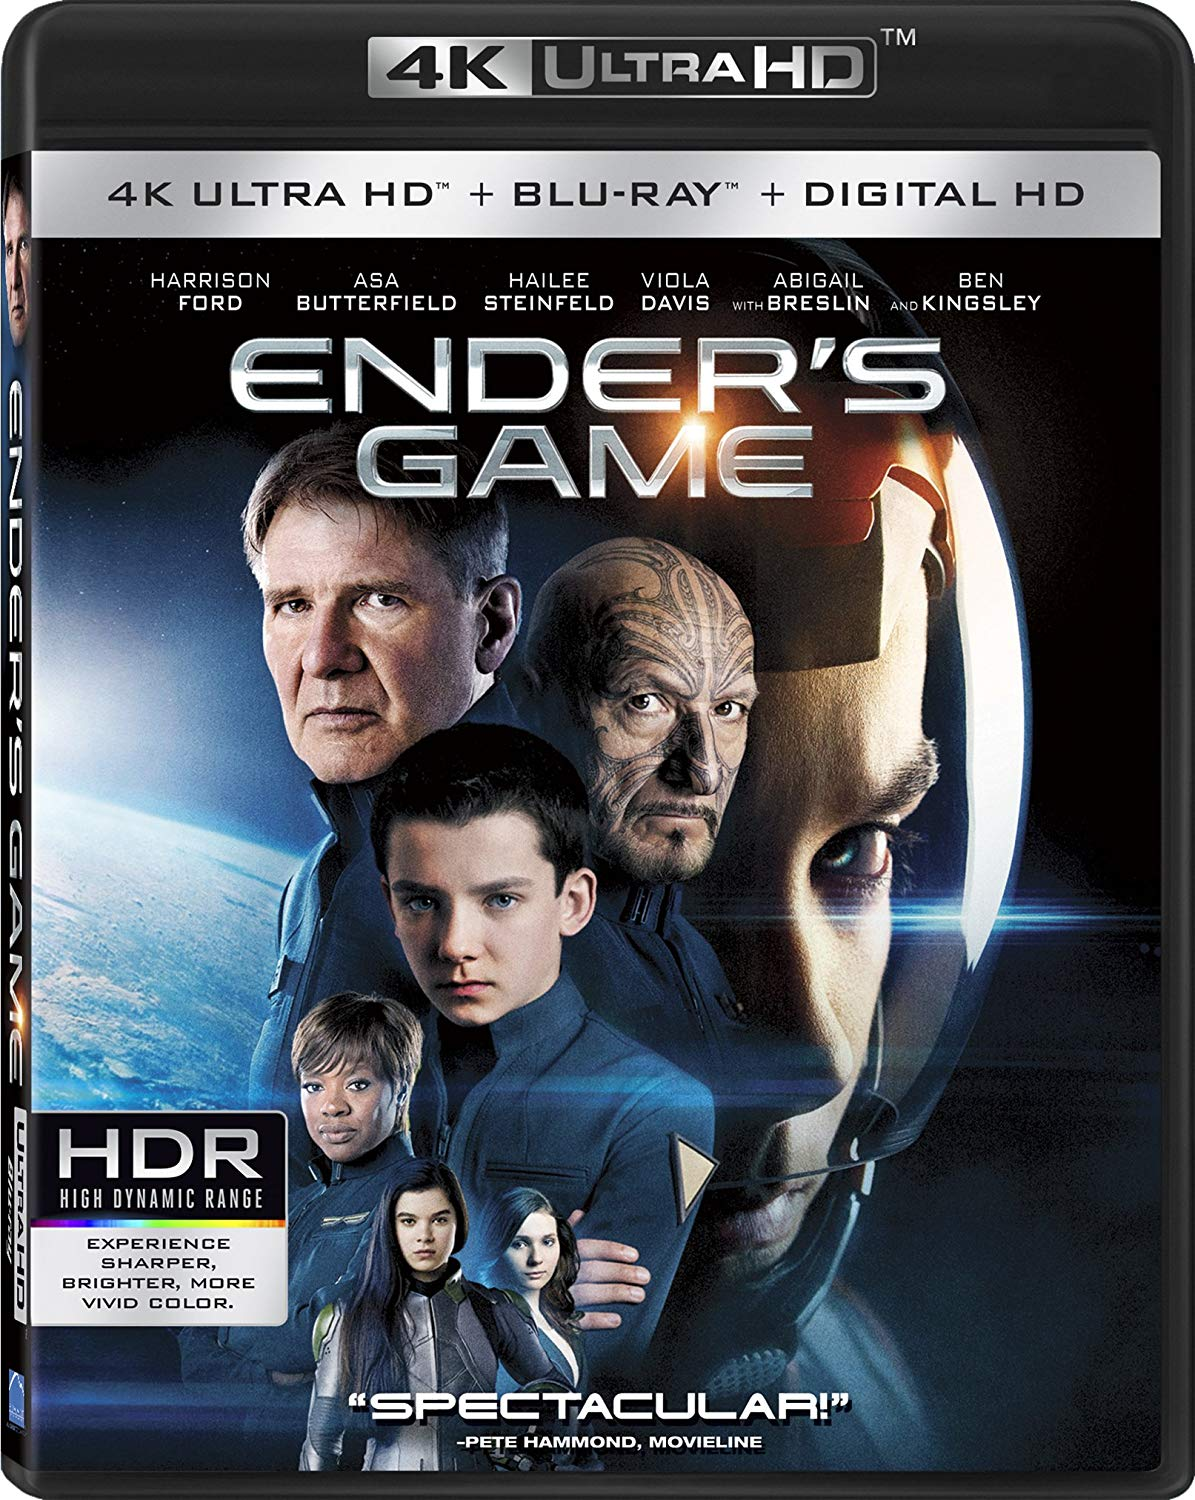 blu ray 4k ultra hd